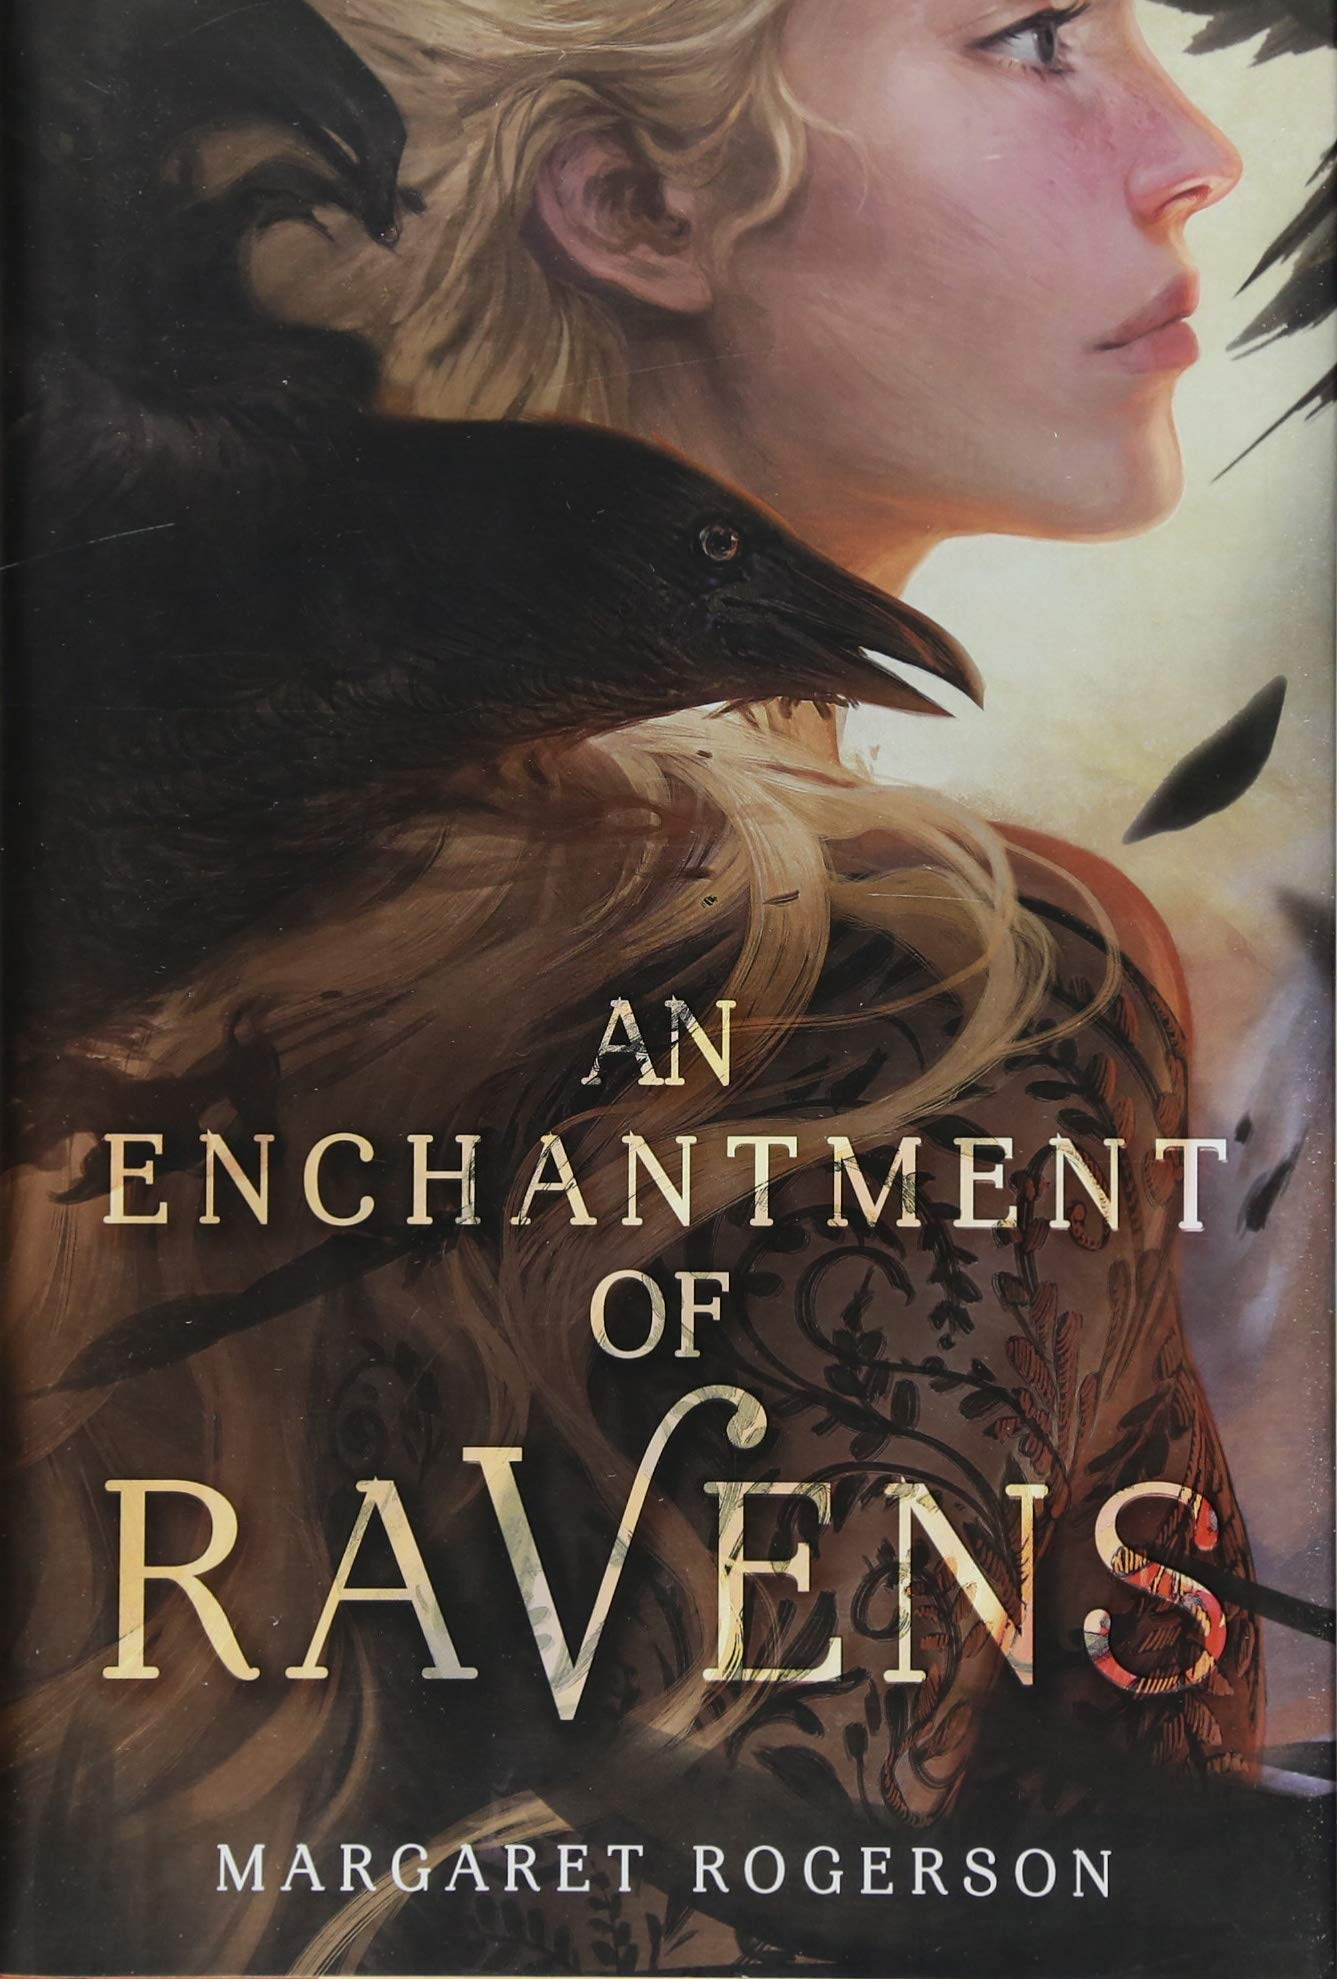 An Enchantment of Ravens: Amazon.co.uk: Rogerson, Margaret: Books